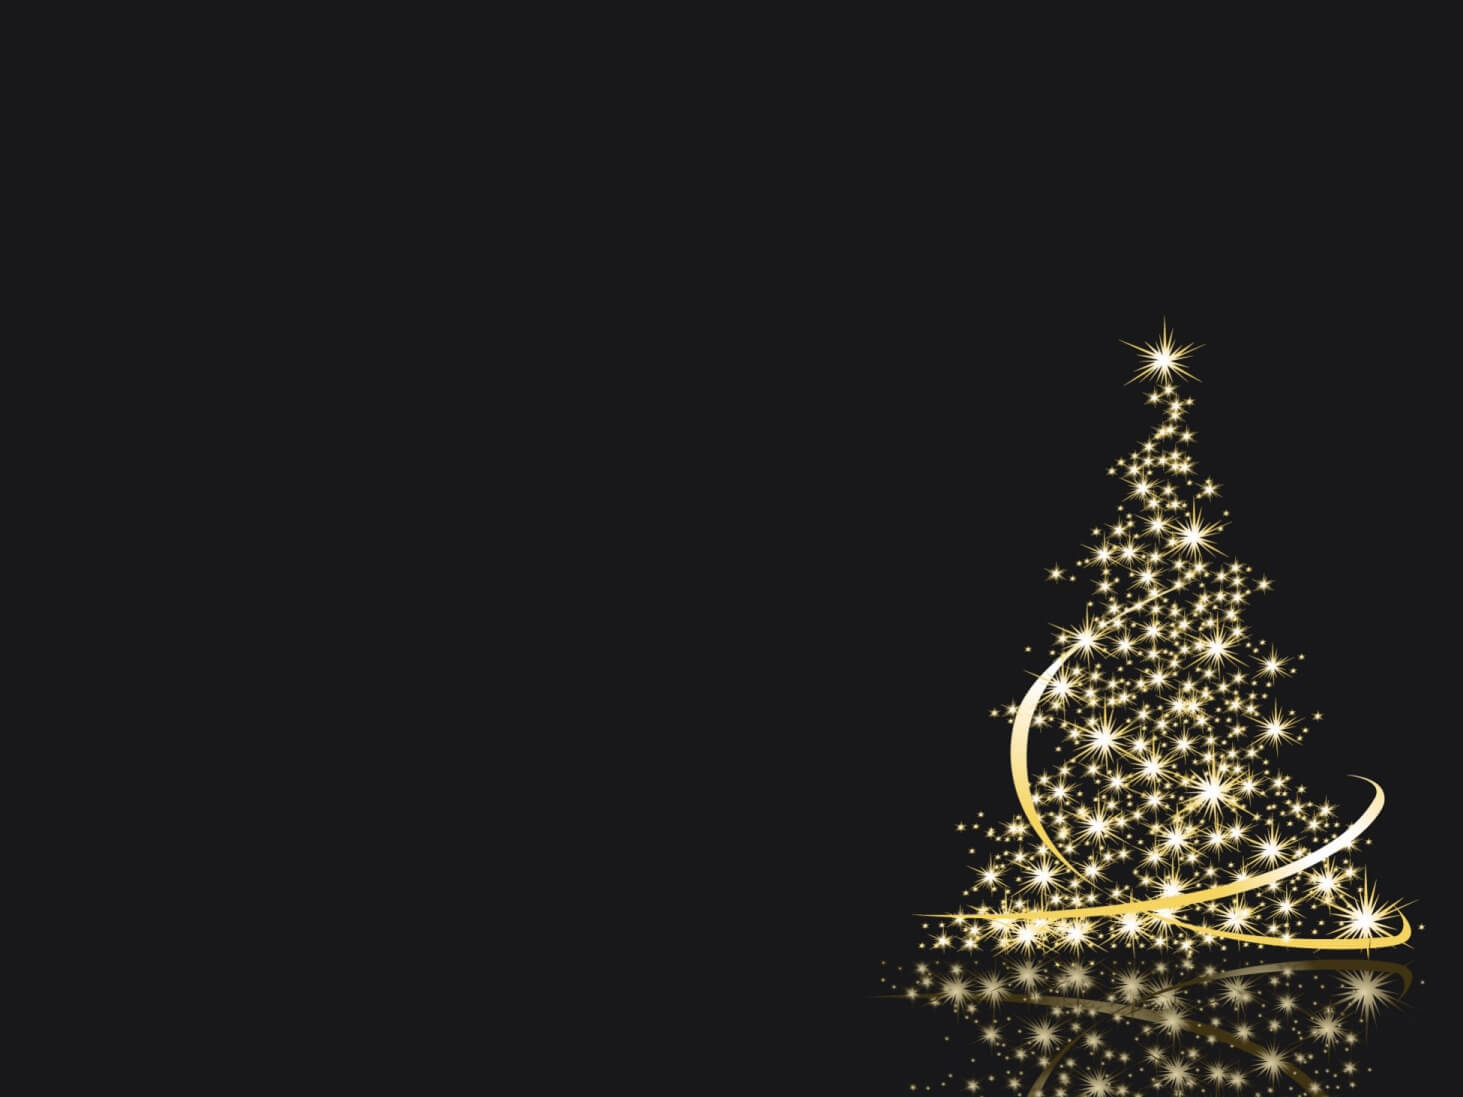 White light christmas tree keynote theme free iwork for Holiday themed facebook cover photos